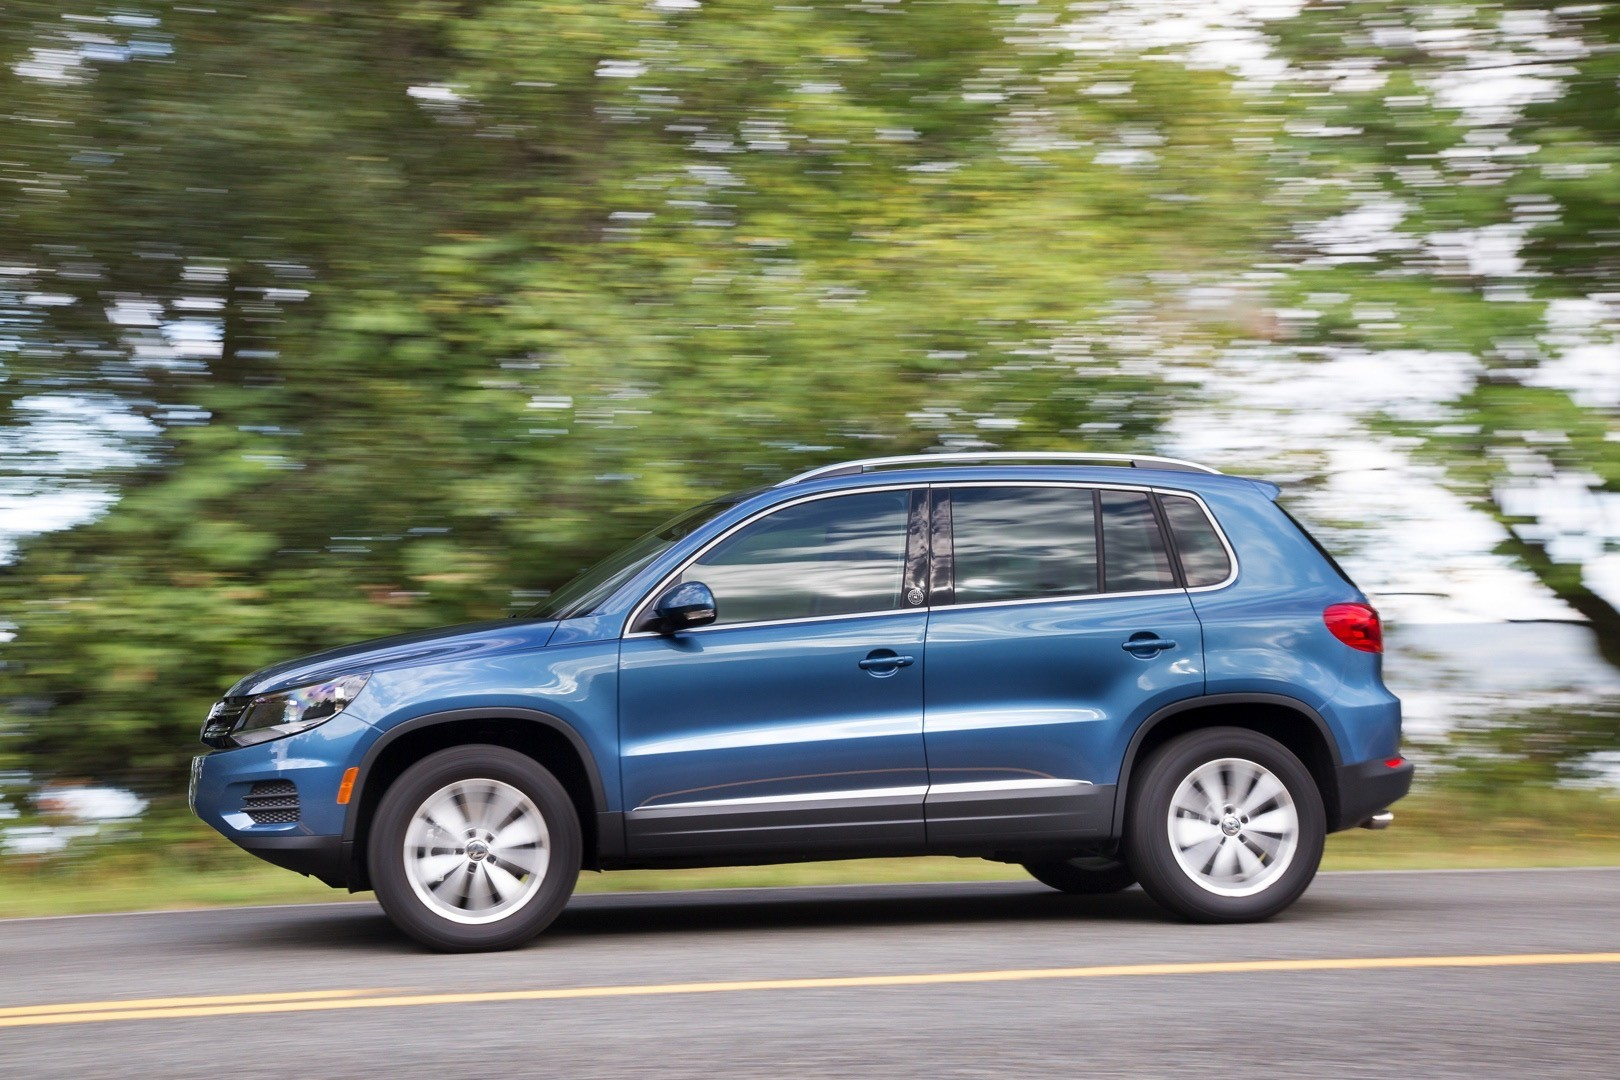 Old Tiguan Lives On In The U.S. For 2018 And 2019 MY Thanks To Demand - autoevolution